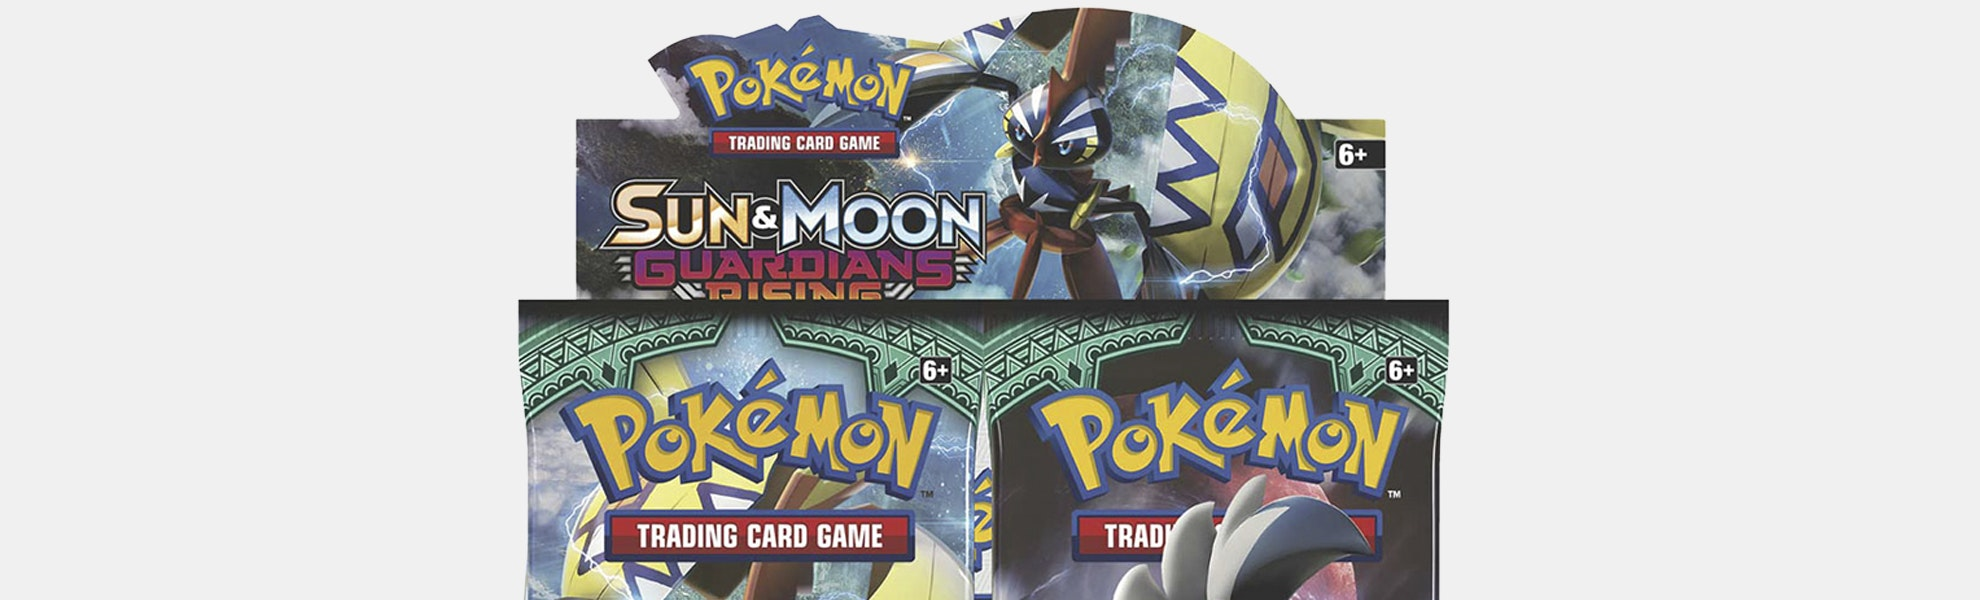 Pokemon Sun & Moon Rising Guardians Booster Box